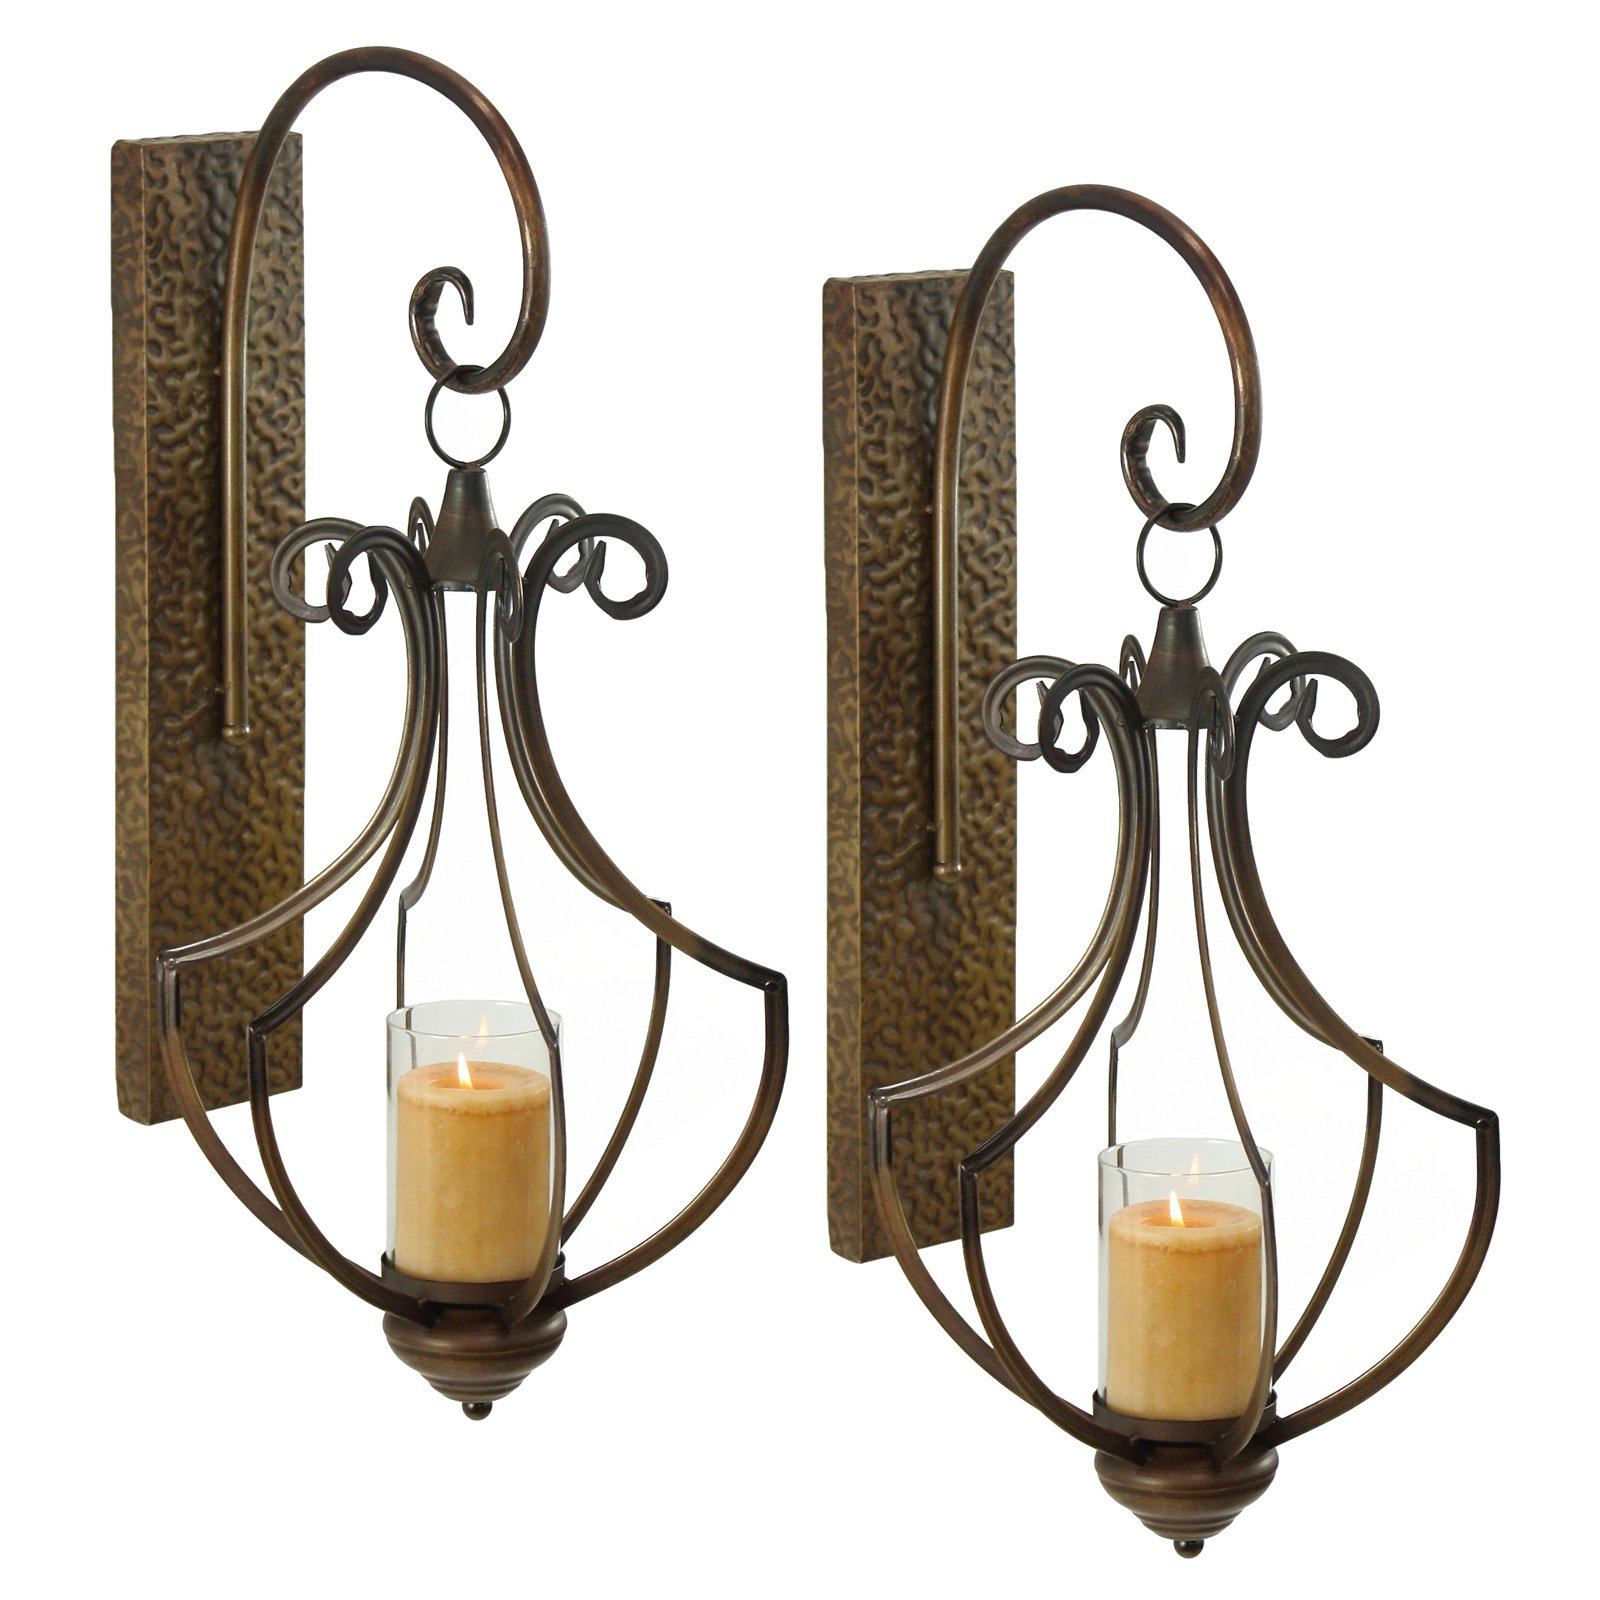 Aspire Home Accents Ribley Candle Wall Sconce Set of 2 by Aspire Home Accents